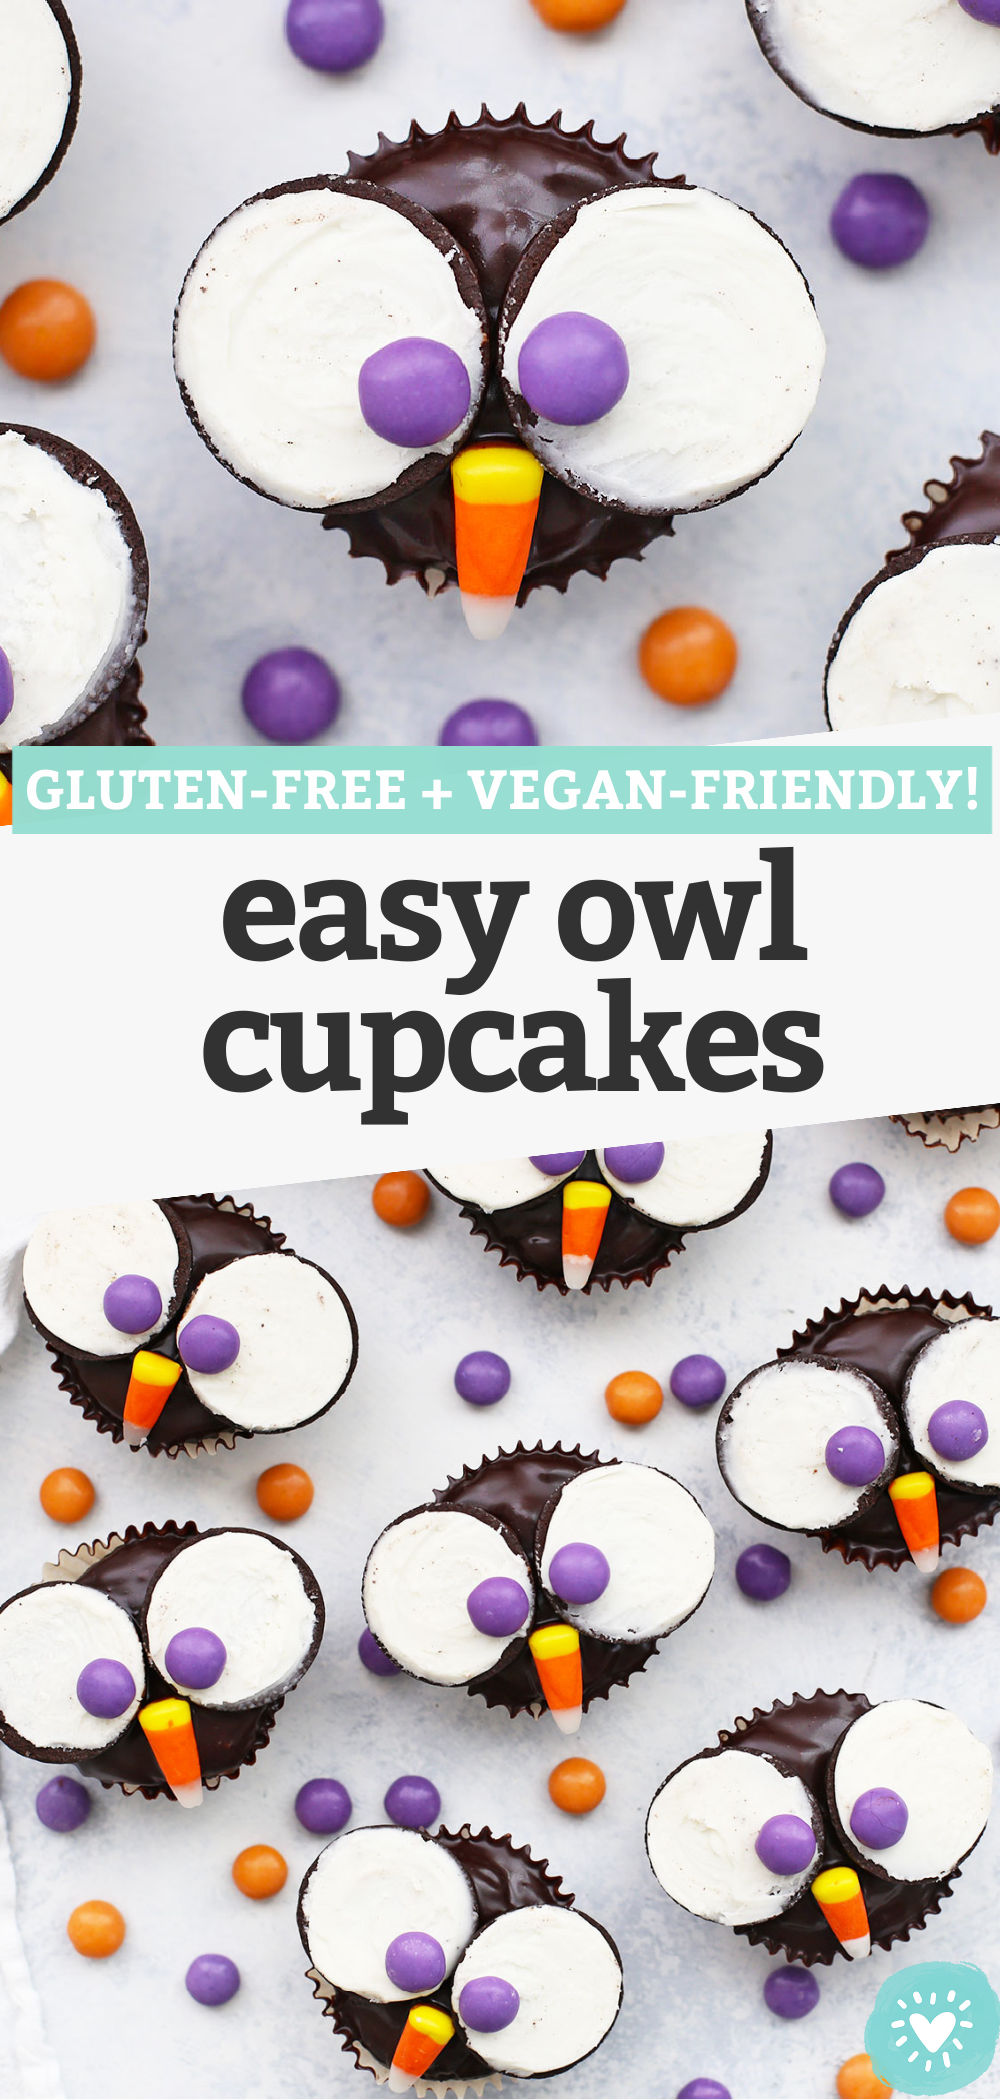 Owl Cupcakes - These adorable little owl cupcakes are perfect for parties or Halloween. Plus, it's easy to make them gluten free & dairy free! // gluten free cupcakes // owl cupcakes // vegan cupcakes // halloween cupcakes // gluten free halloween ideas // halloween treats // dairy free cupcakes // vegan chocolate frosting